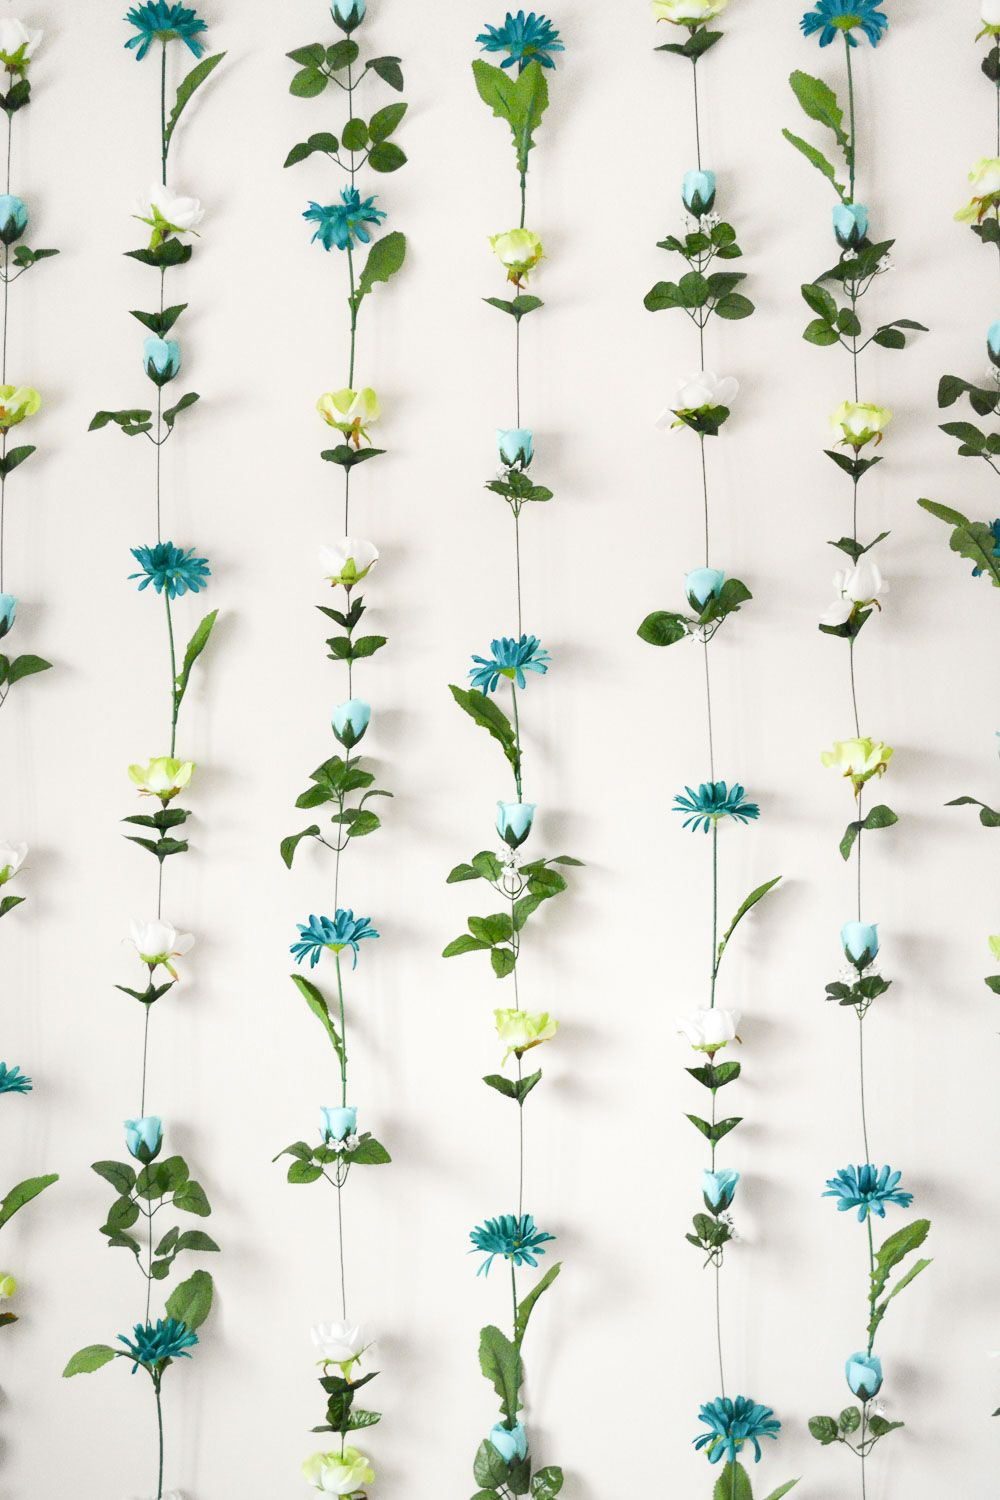 DIY Flower Wall | Flower wall backdrop, Flower wall decor ... on Hanging Wall Sconces For Flowers id=70545